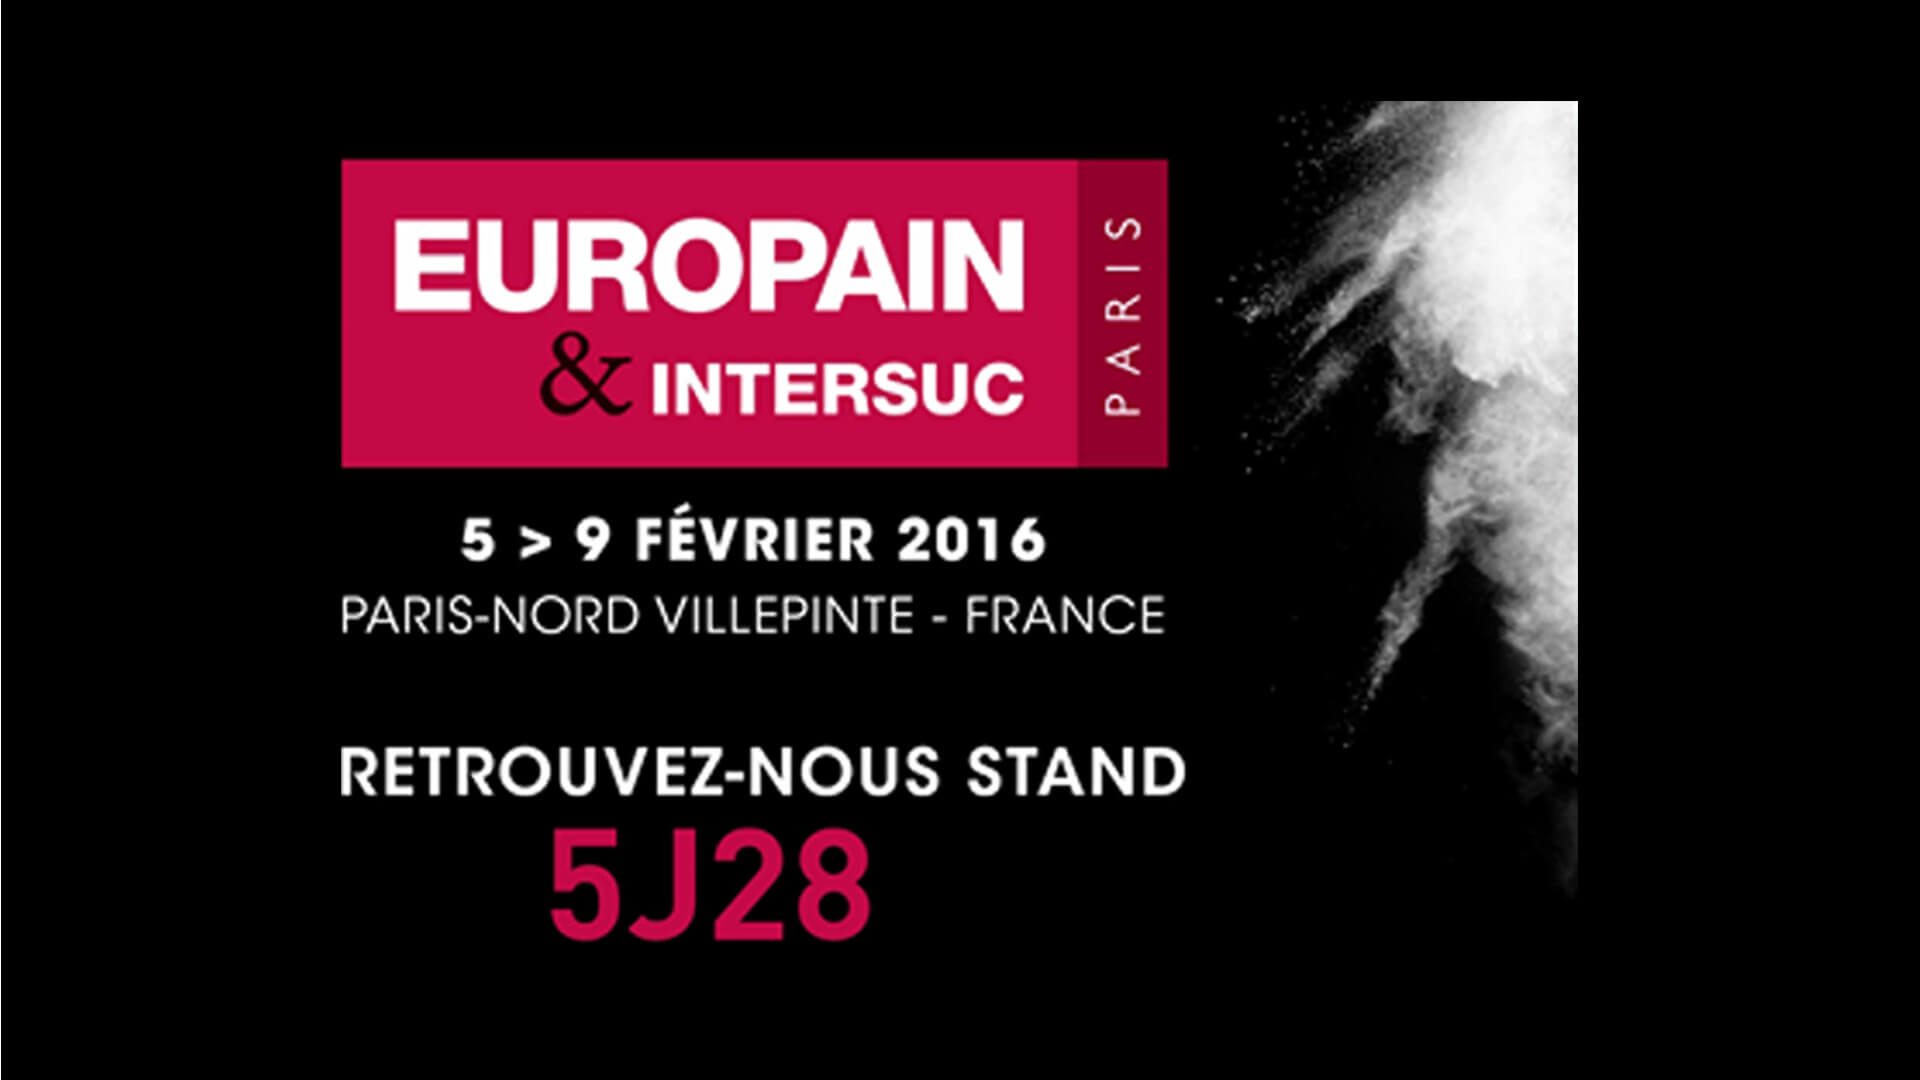 Salon europain 2016 paris hydroprocess for Salon bio paris 2016